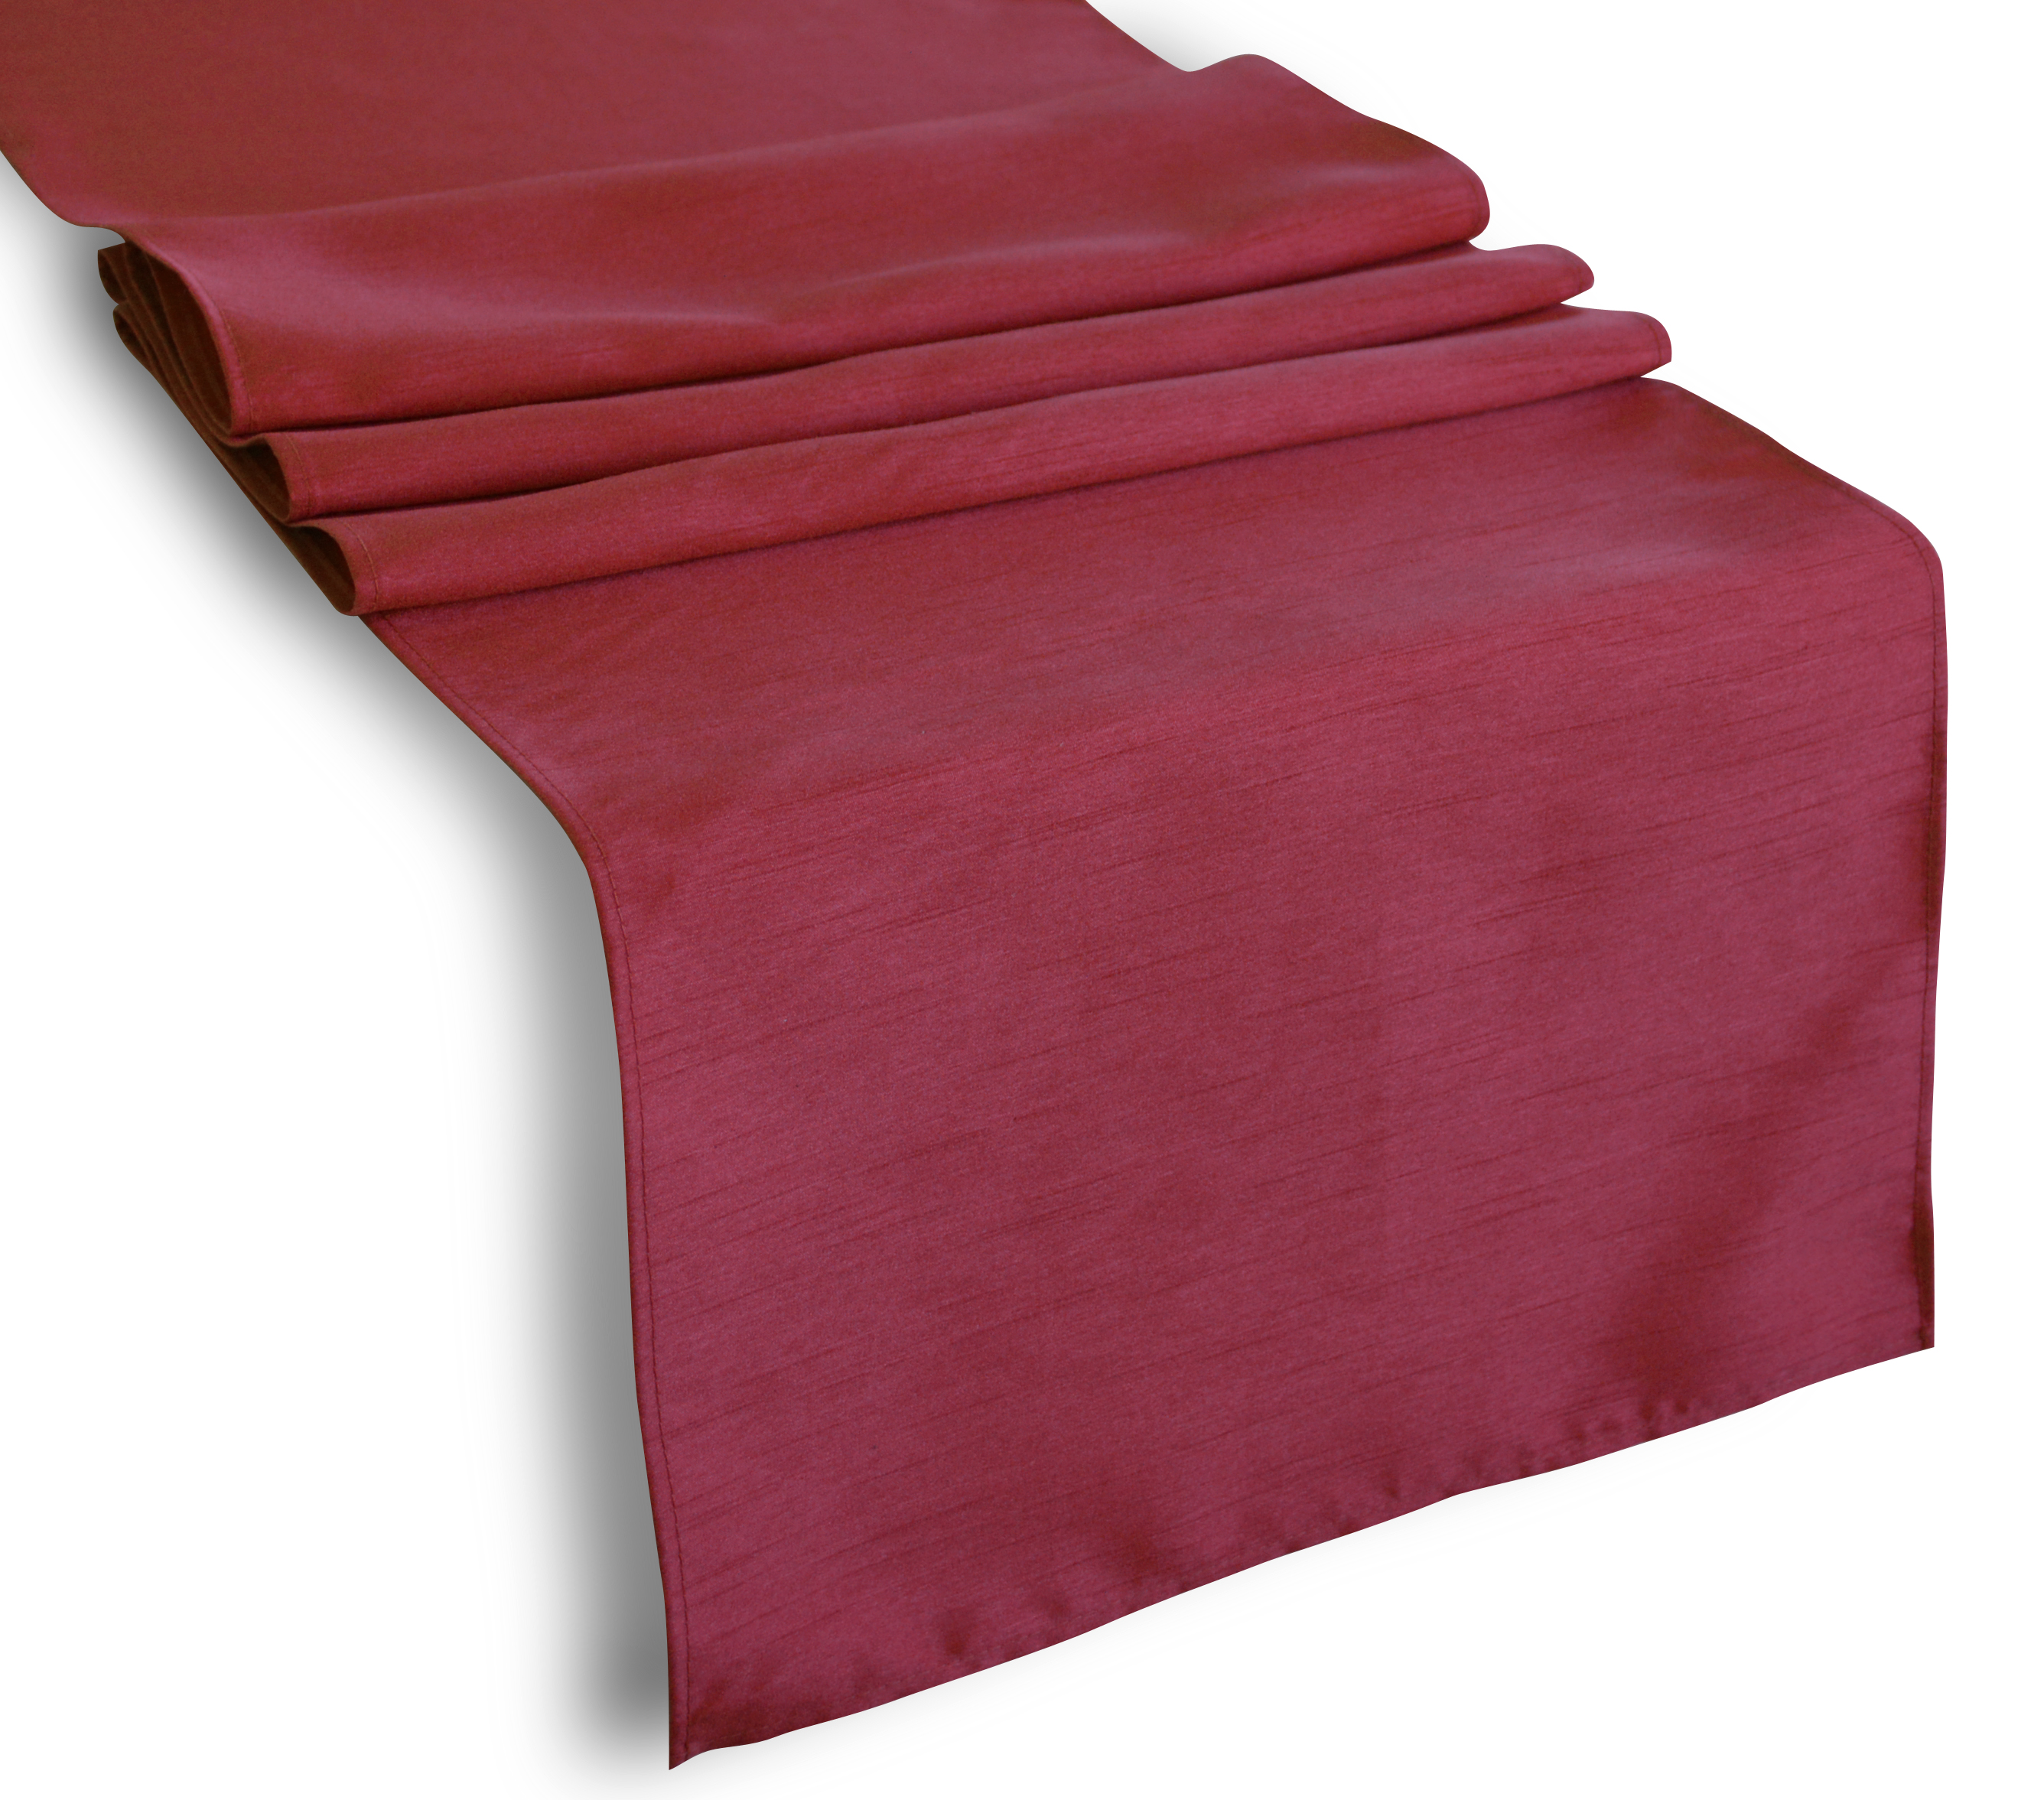 Aiking Home (Pack Of 2) Solid Faux Silk Table Runner, Burgundy Size  13u0027u0027x72u0027u0027  Ideal For Wedding, Baby Shower, Party Decor, Thanksgiving,  Christmas Or ...